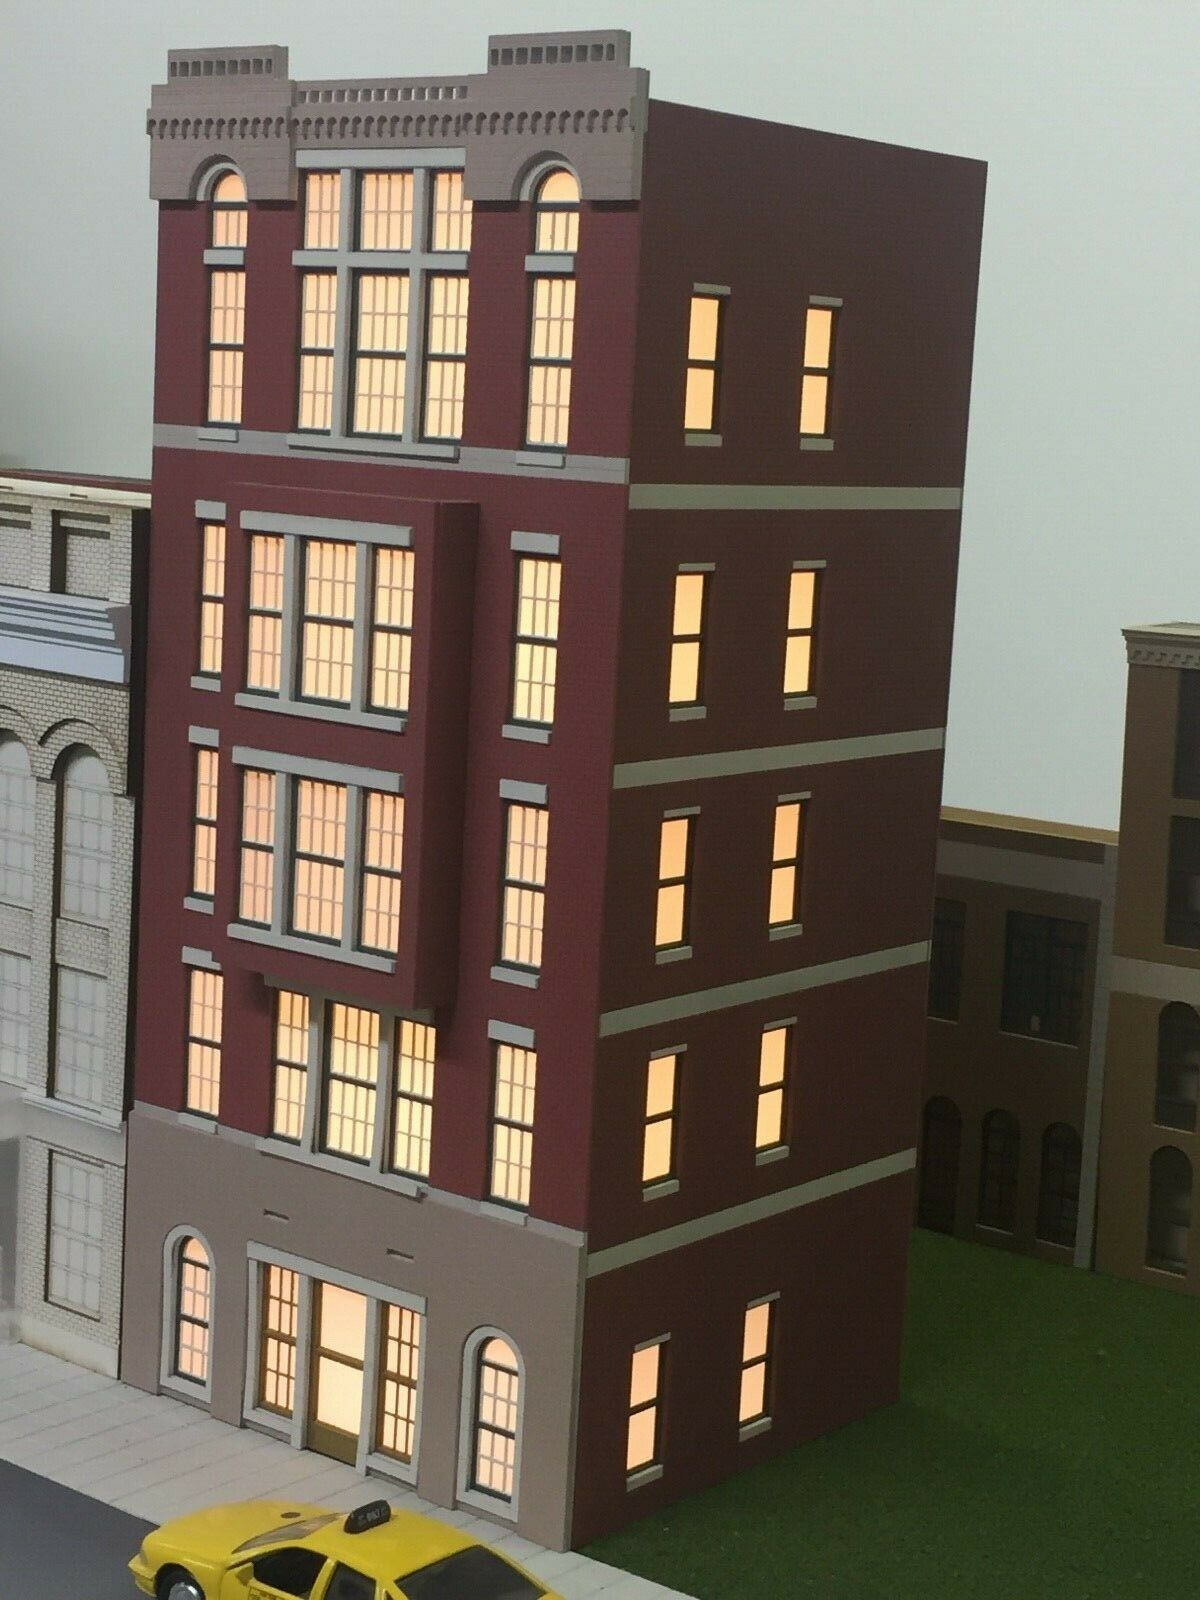 O Scale Layout Building Cameron Apartments 5-Story Lit, CS-01-5020-BAY-WLR-B2